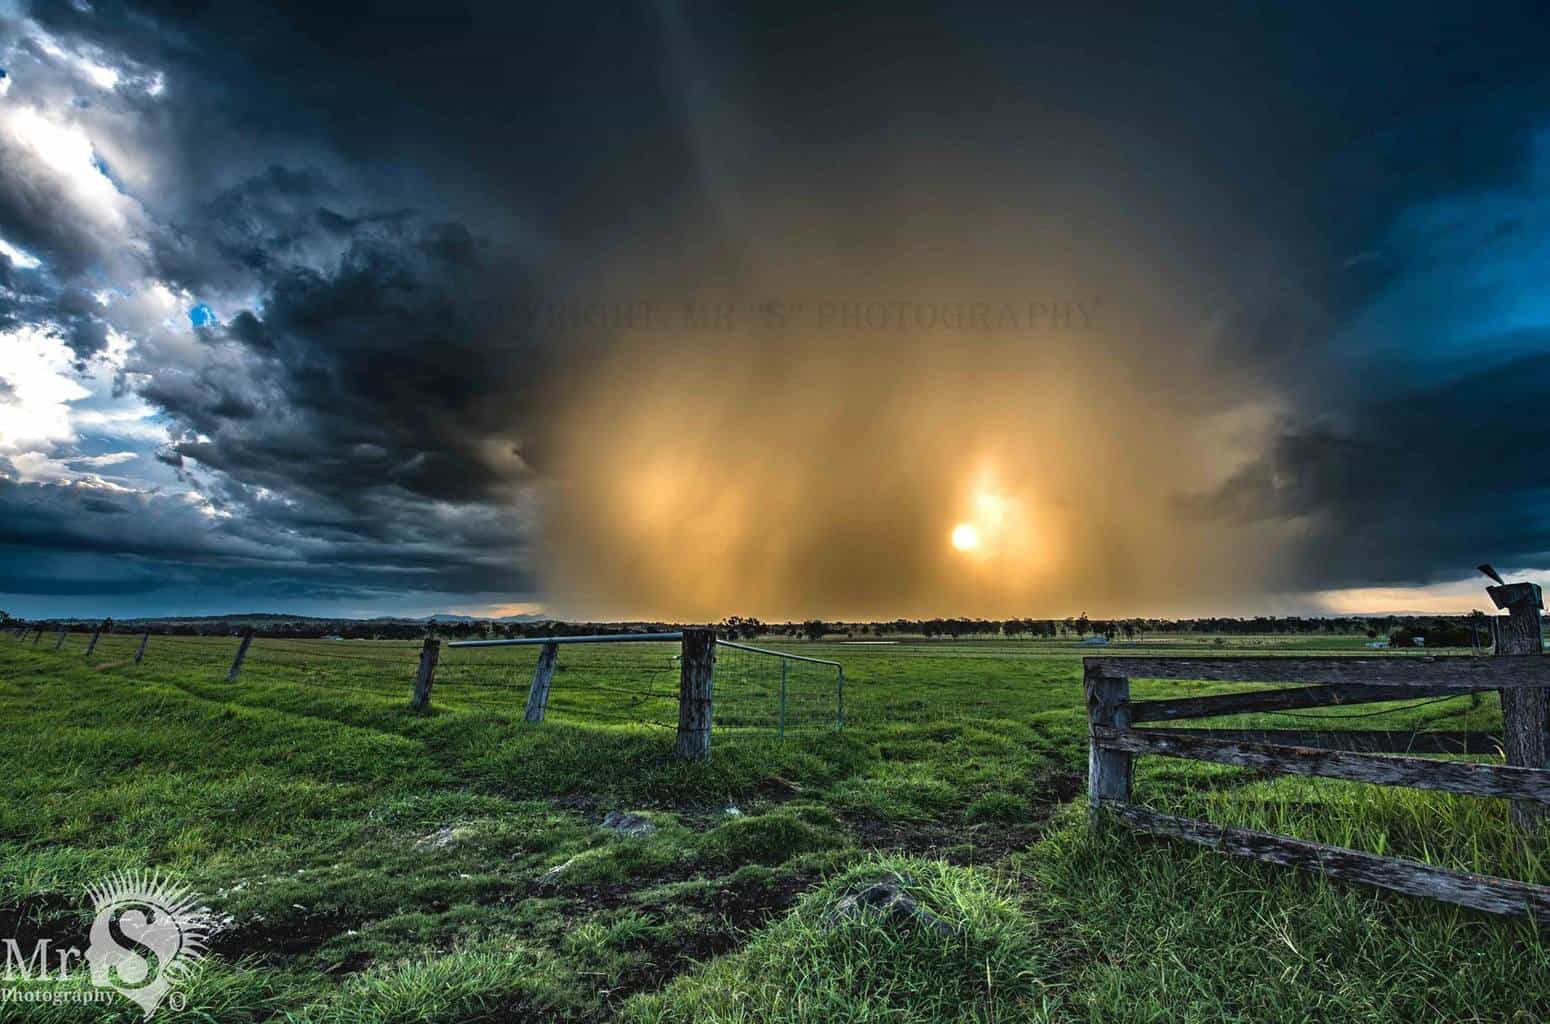 Today's Sunset at Peak Crossing in Queensland Australia was blocked by a slow moving and weak thunderstorm. It made for a really cool affect as the sun pushed through the rain core and lit it all up golden.